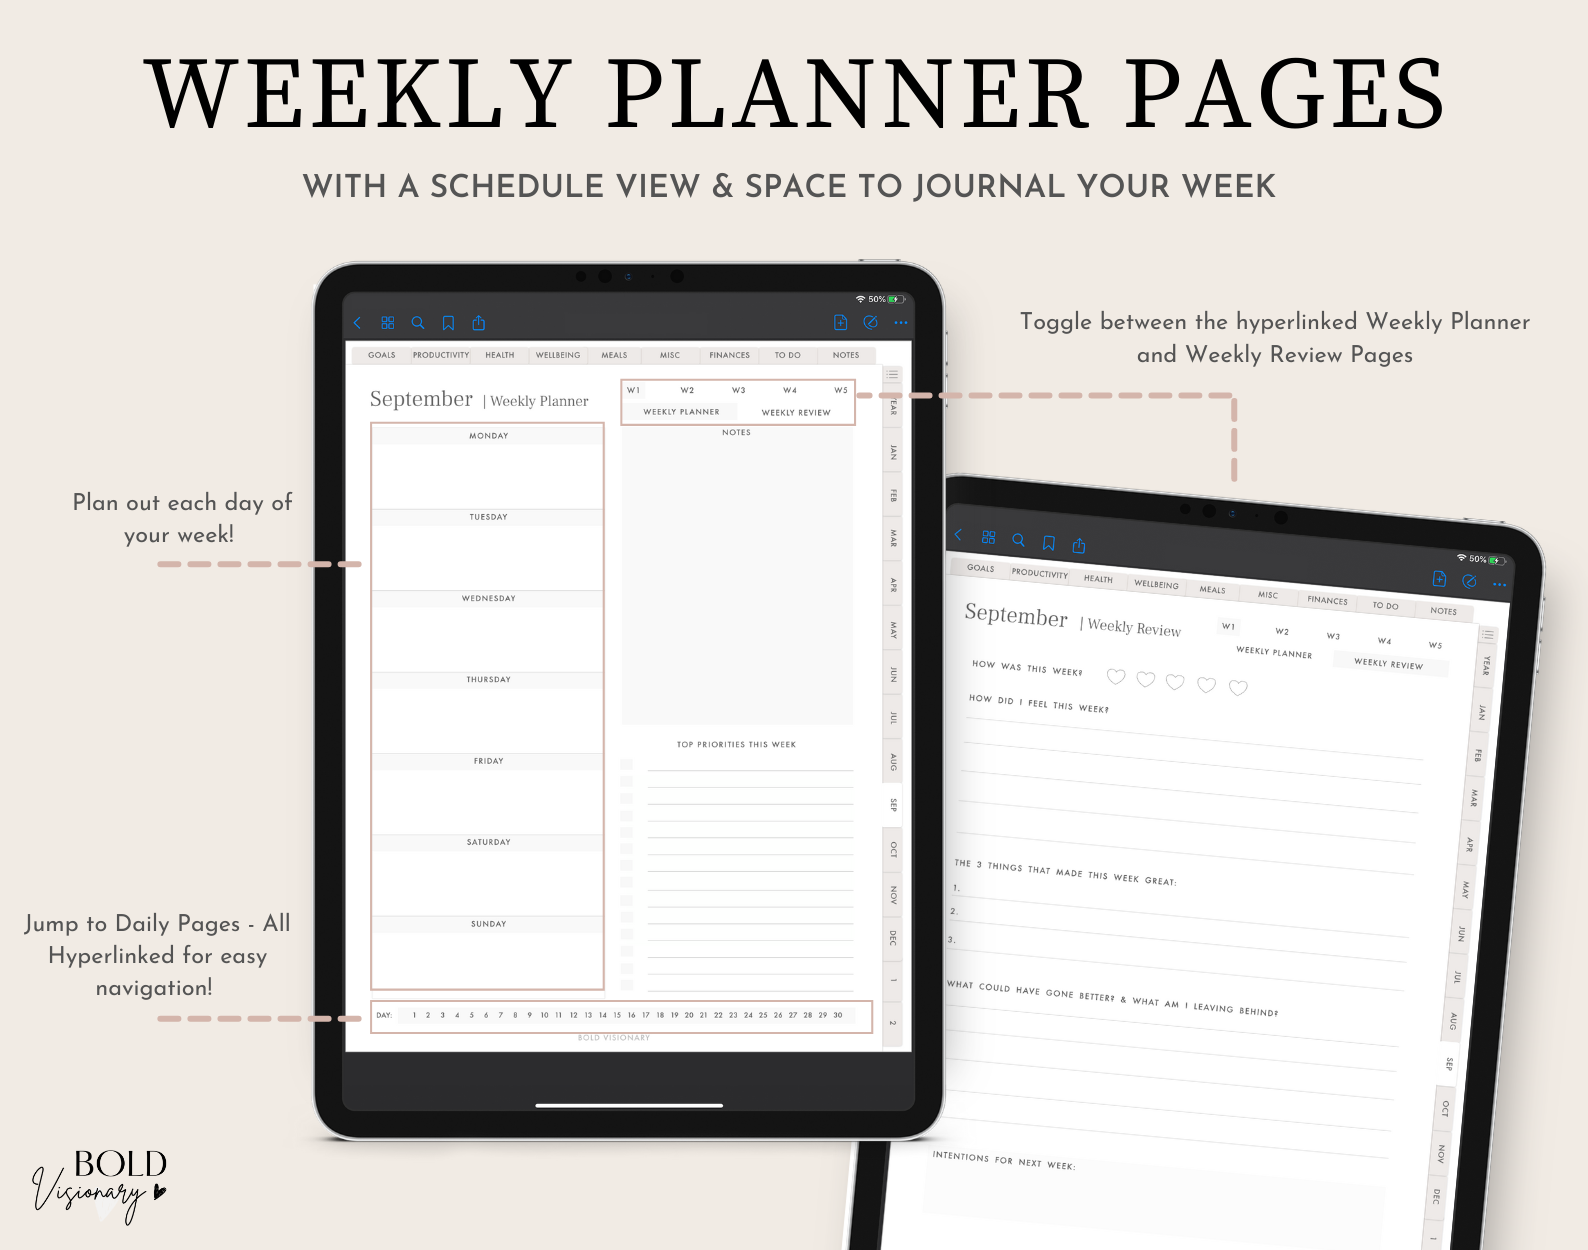 5Weekly-Planner-Page-Bold-Visionary-Digital-Planner